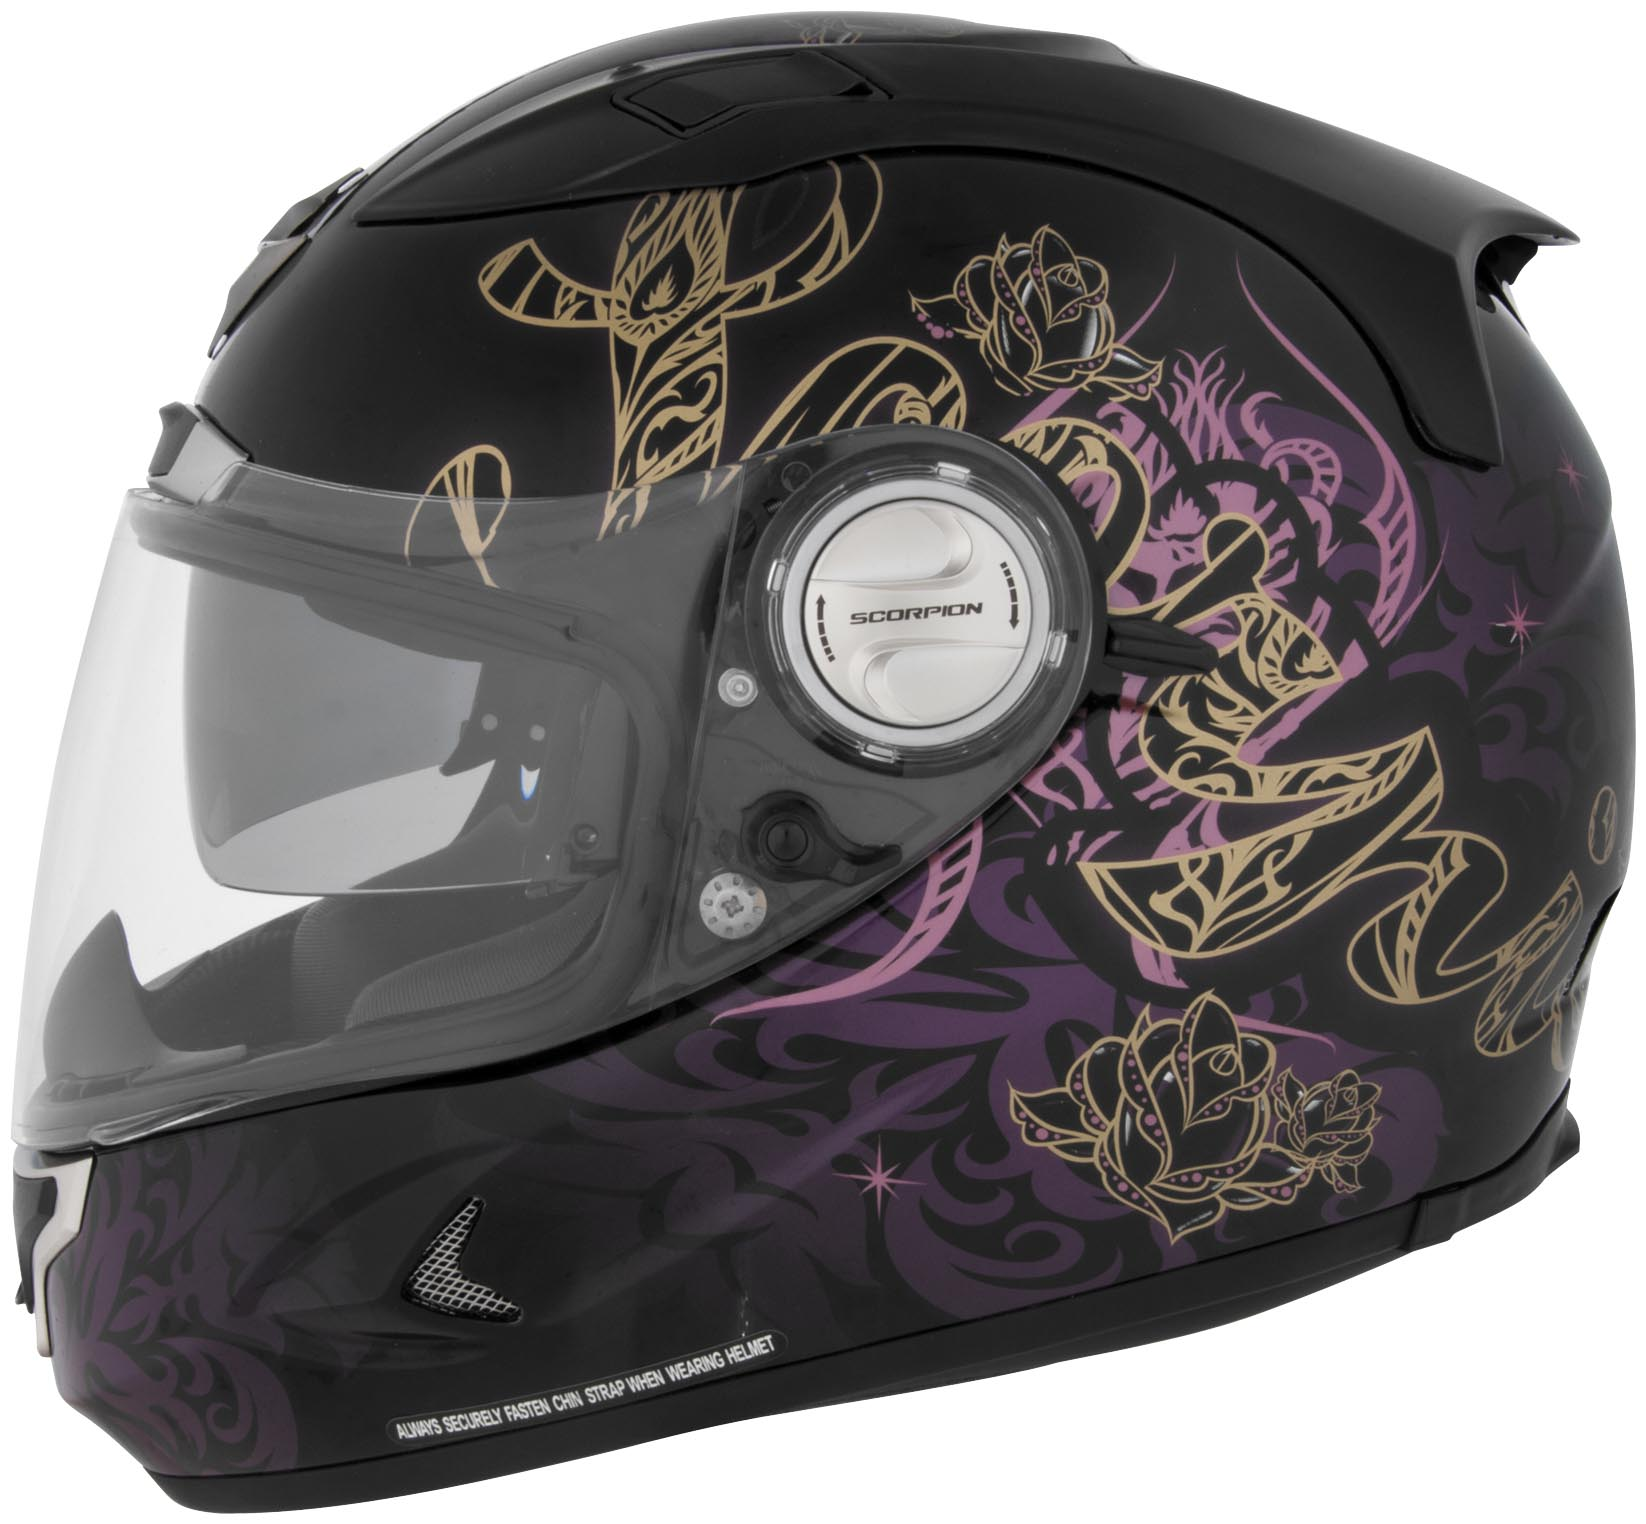 Scorpion Exo 1100 Preciosa Full Face Helmet Black Pink